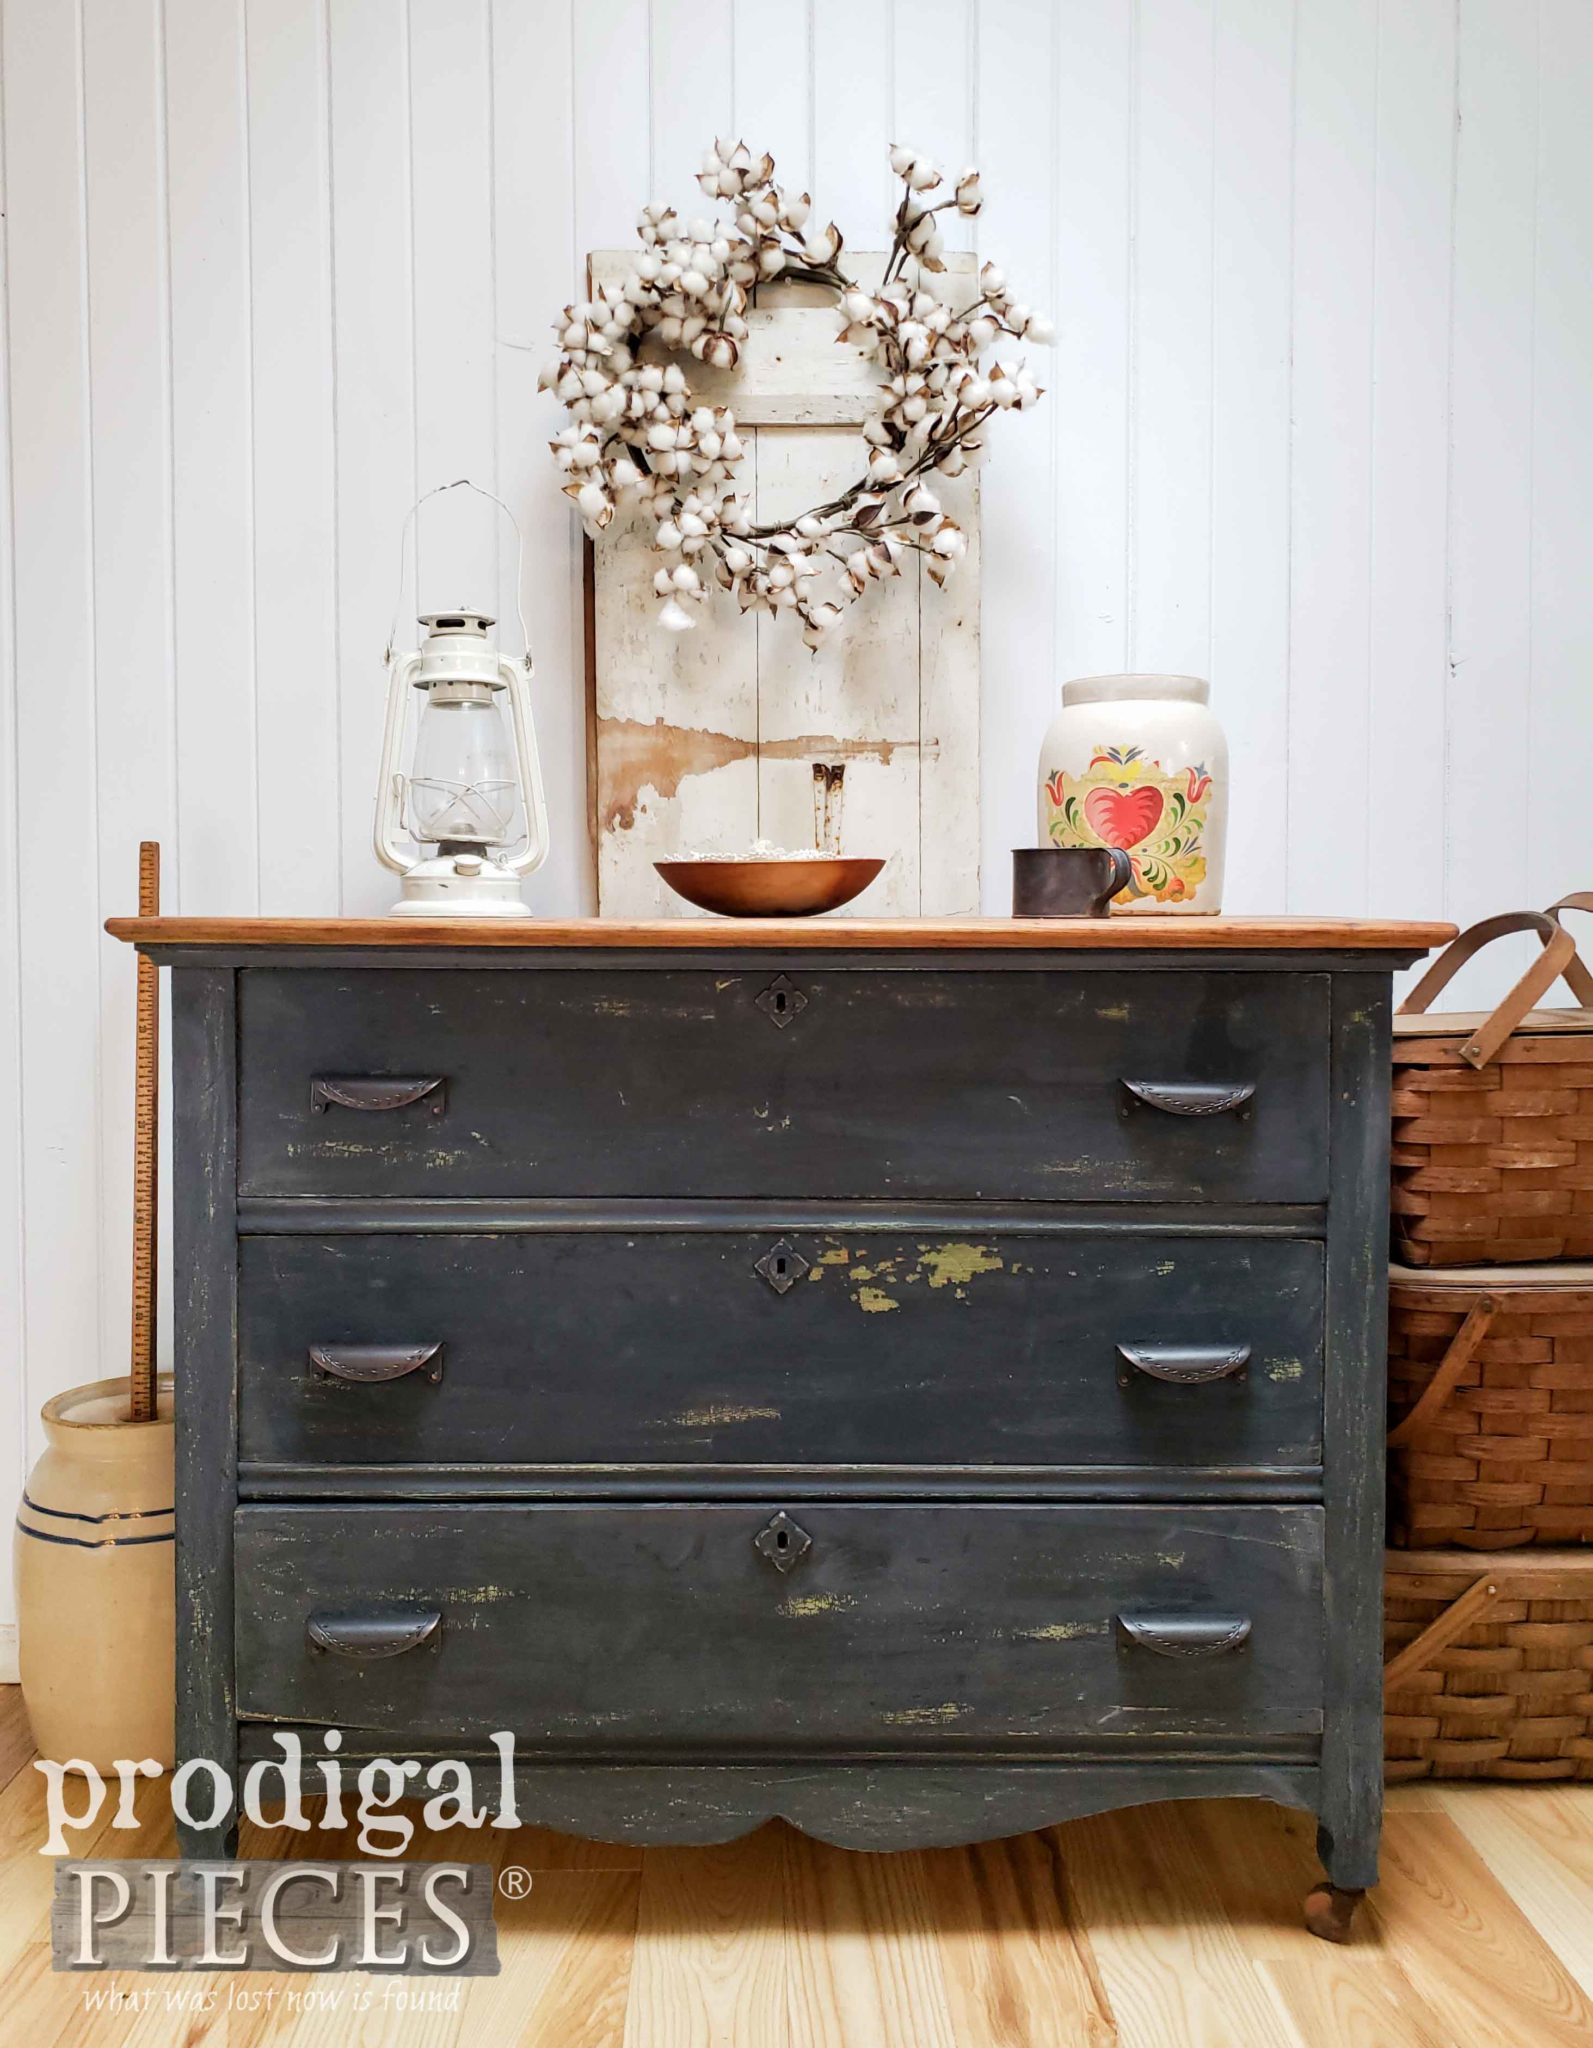 Rustic Farmhouse Chest of Drawers with Chippy Milk Paint by Larissa of Prodigal Pieces | Tutorial at prodigalpieces.com #prodigalpieces #farmhouse #furniture #home #homedecor #milkpaint #diy